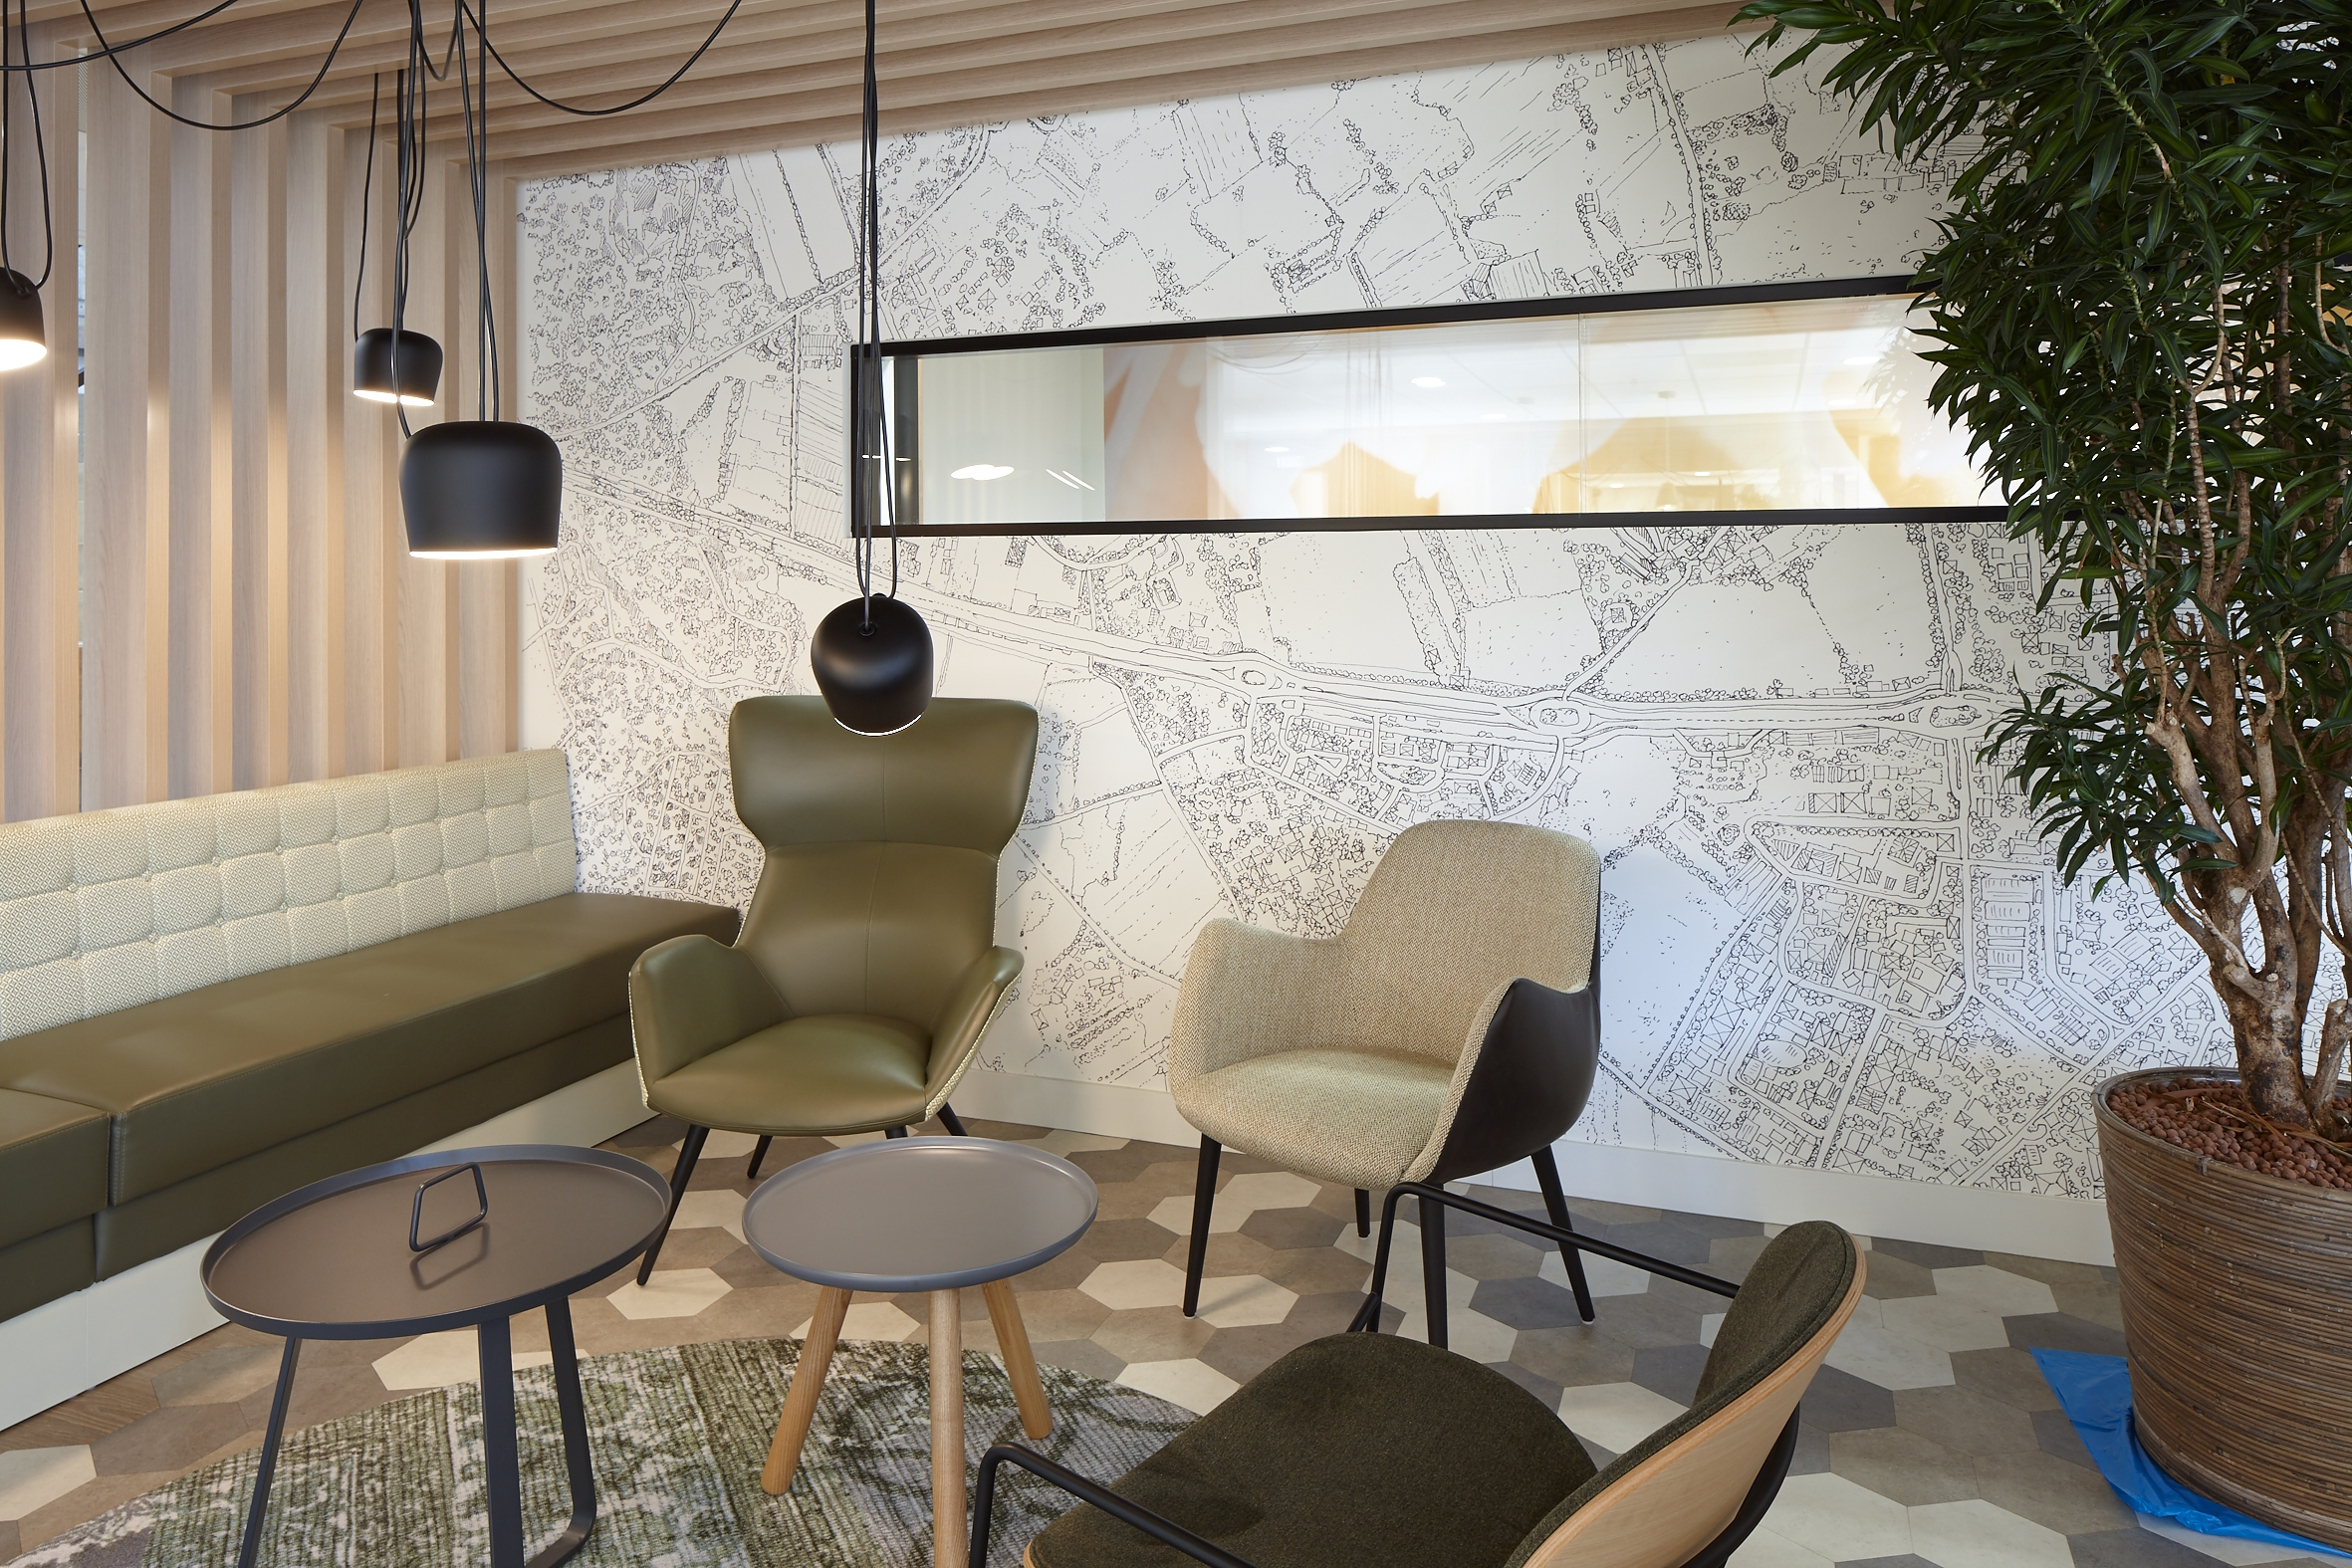 wandprint wallcovering airtex glasfolie clearview witprint interieur signing print VIZIO